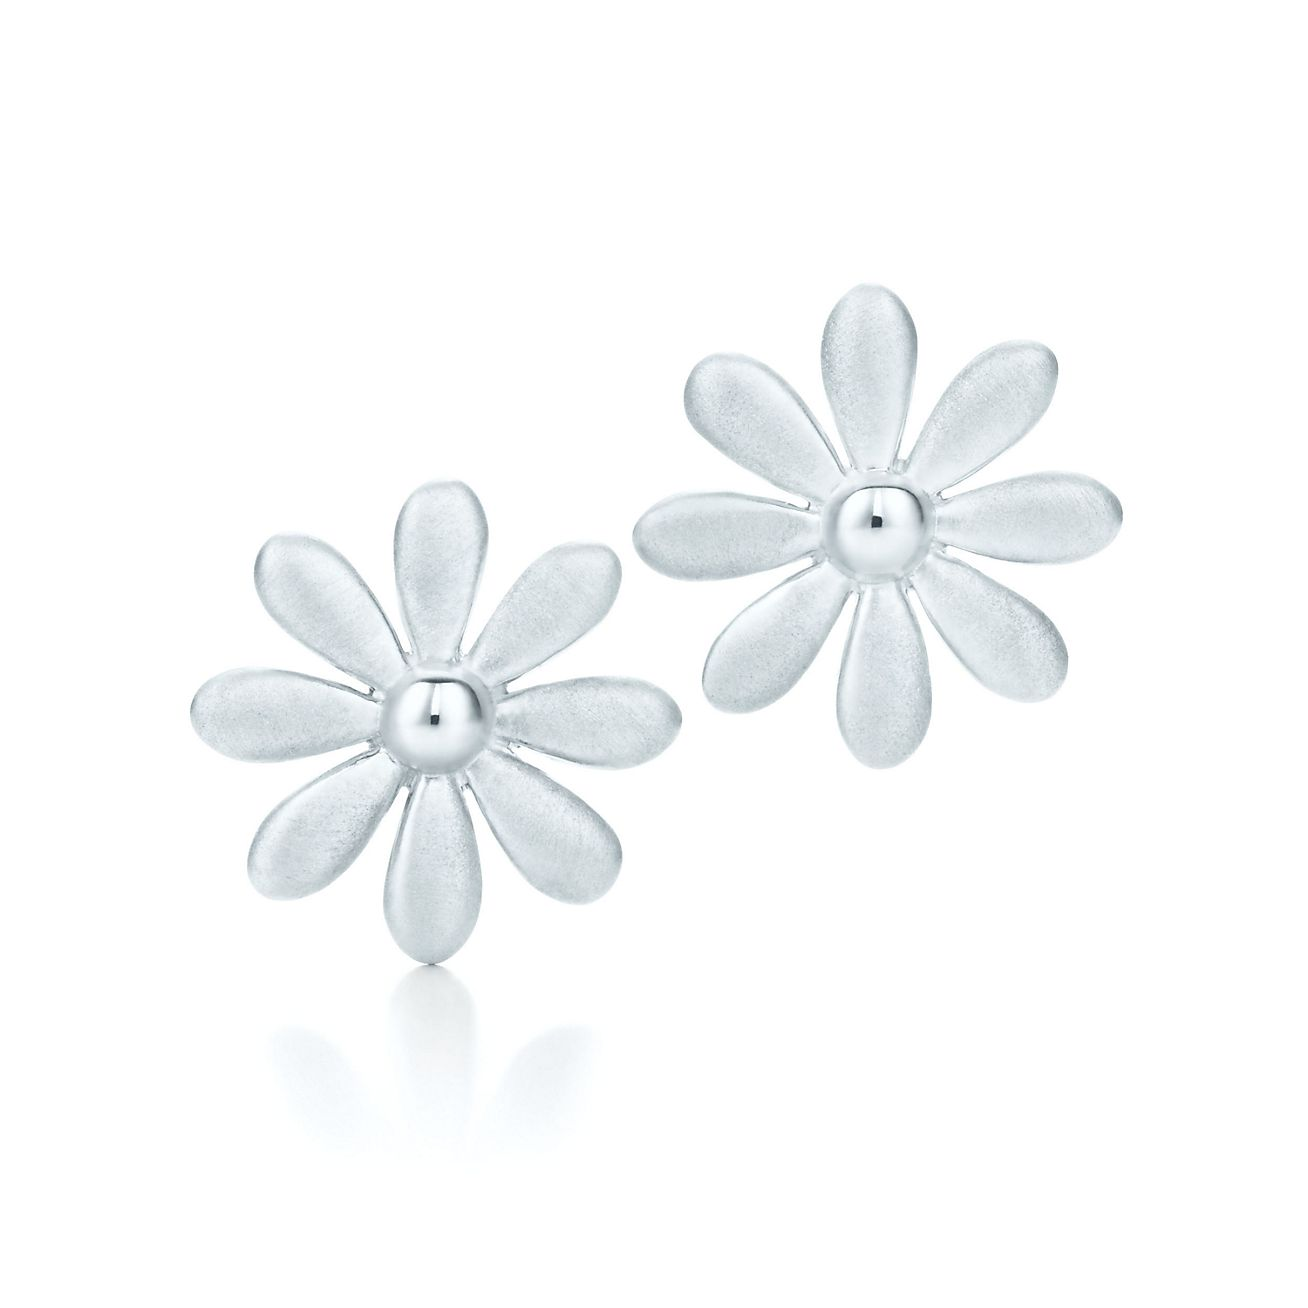 Jewelry Earrings Daisy Earrings 28695993 Tiffany Earrings Sterling